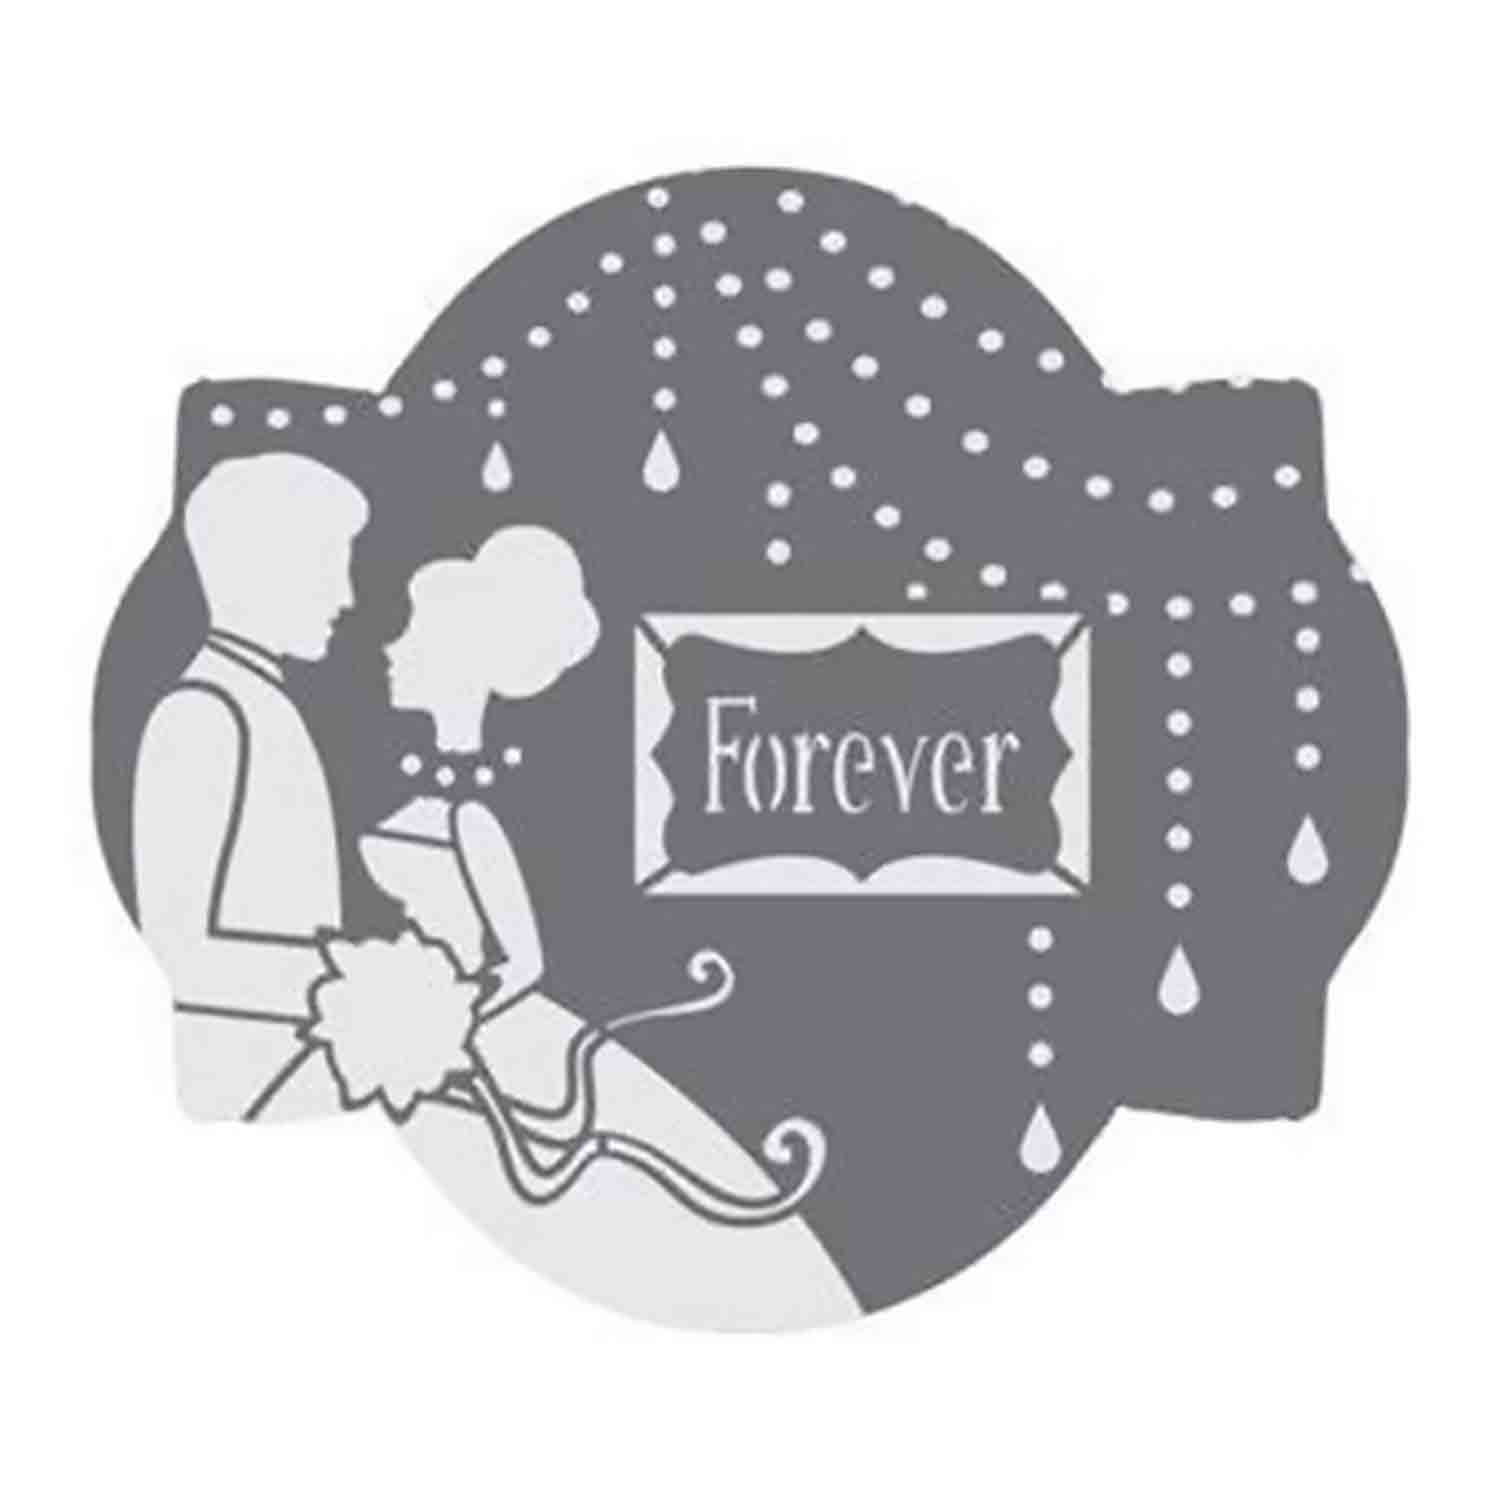 Forever Stencil Set by Julia M Usher